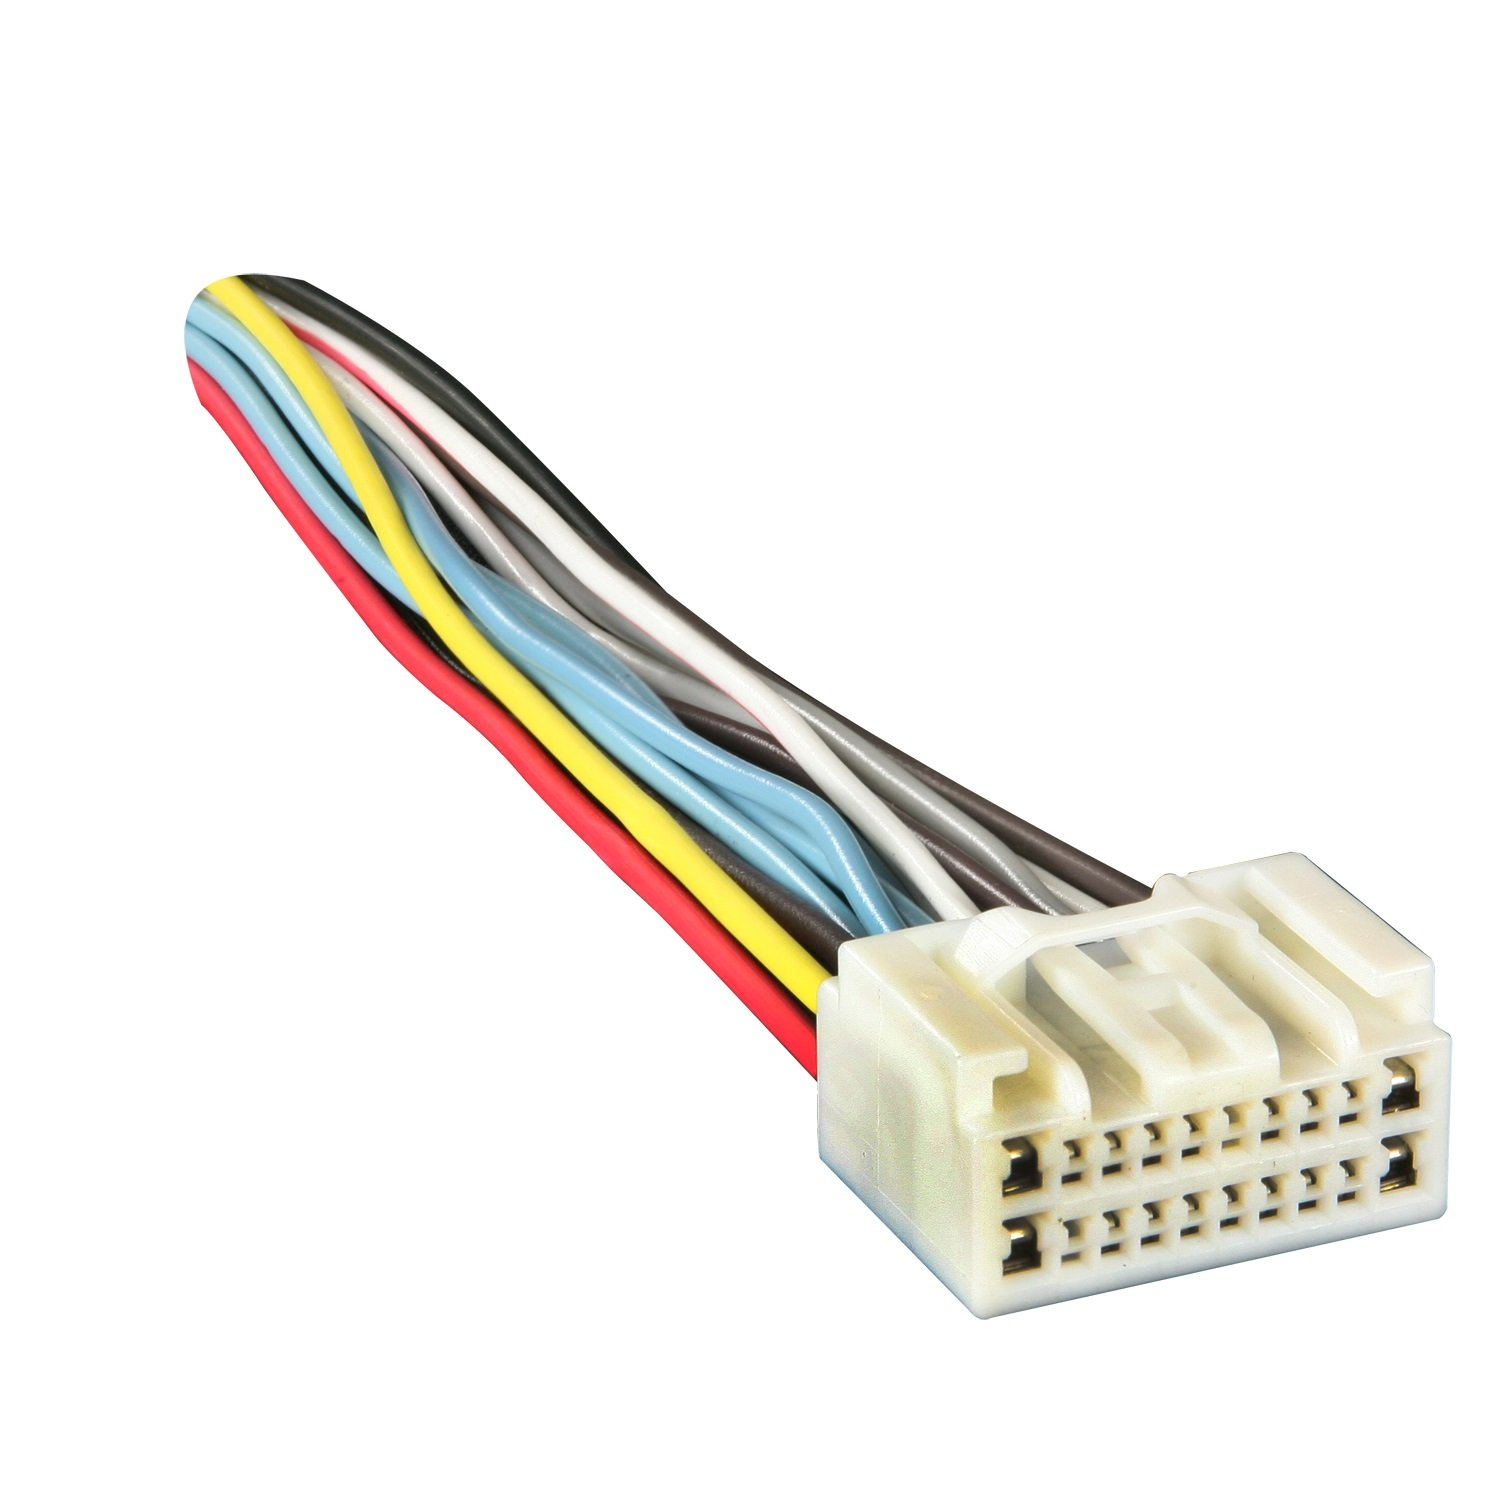 61k6eVpKLJL._SL1500_ amazon com metra 71 8113 reverse wiring harness for select 2000 speaker wiring harness at alyssarenee.co